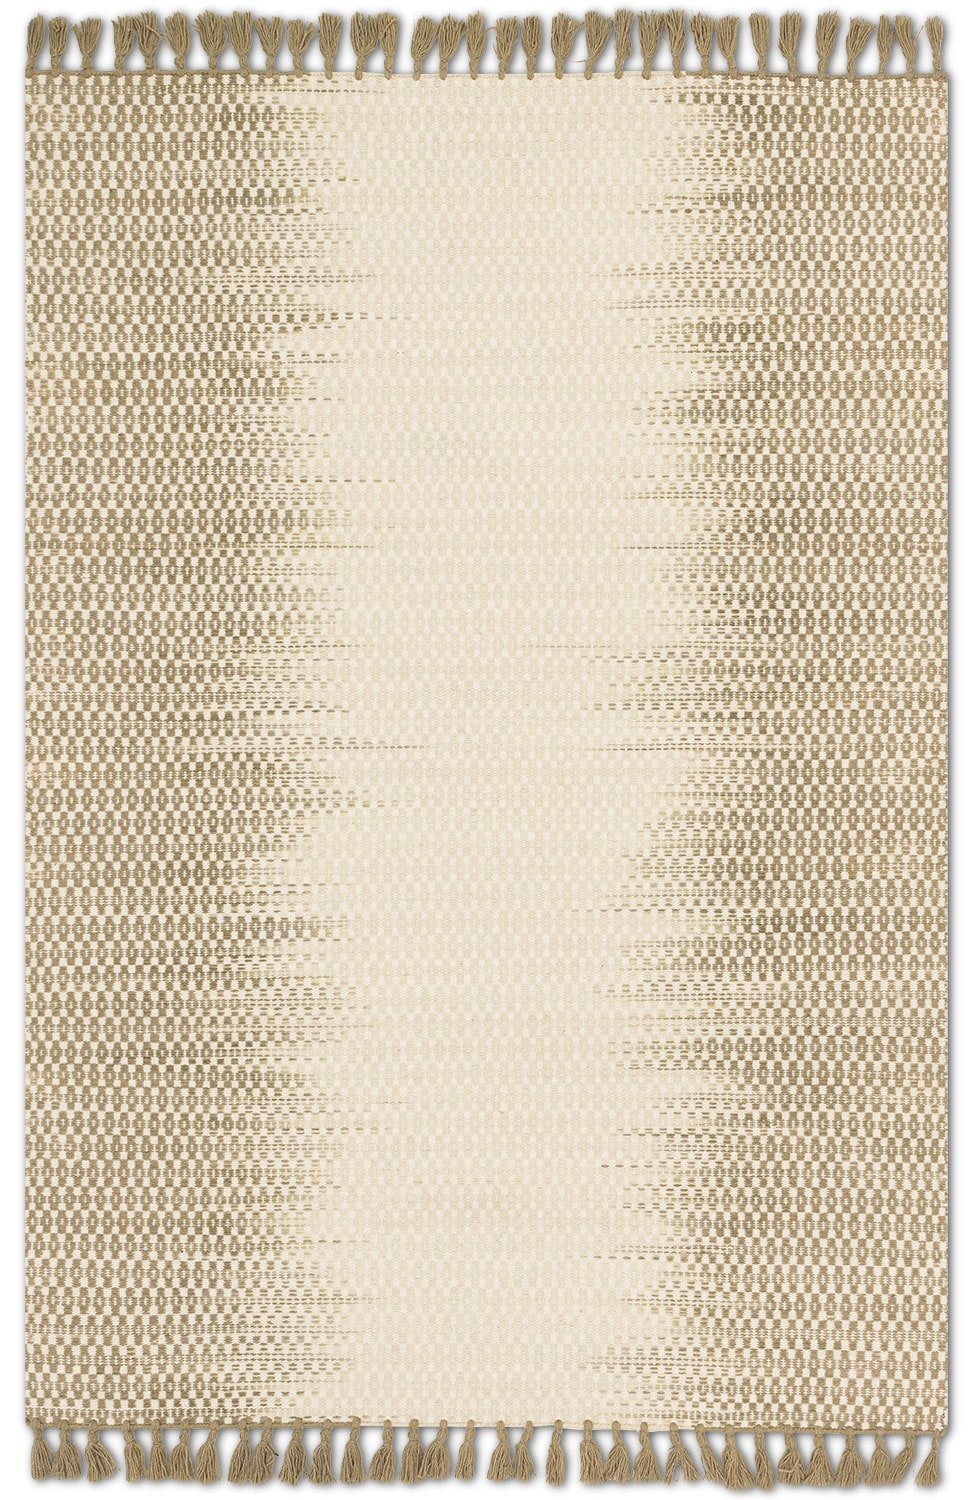 Chantilly 4' x 6' Rug - Ivory and Olive